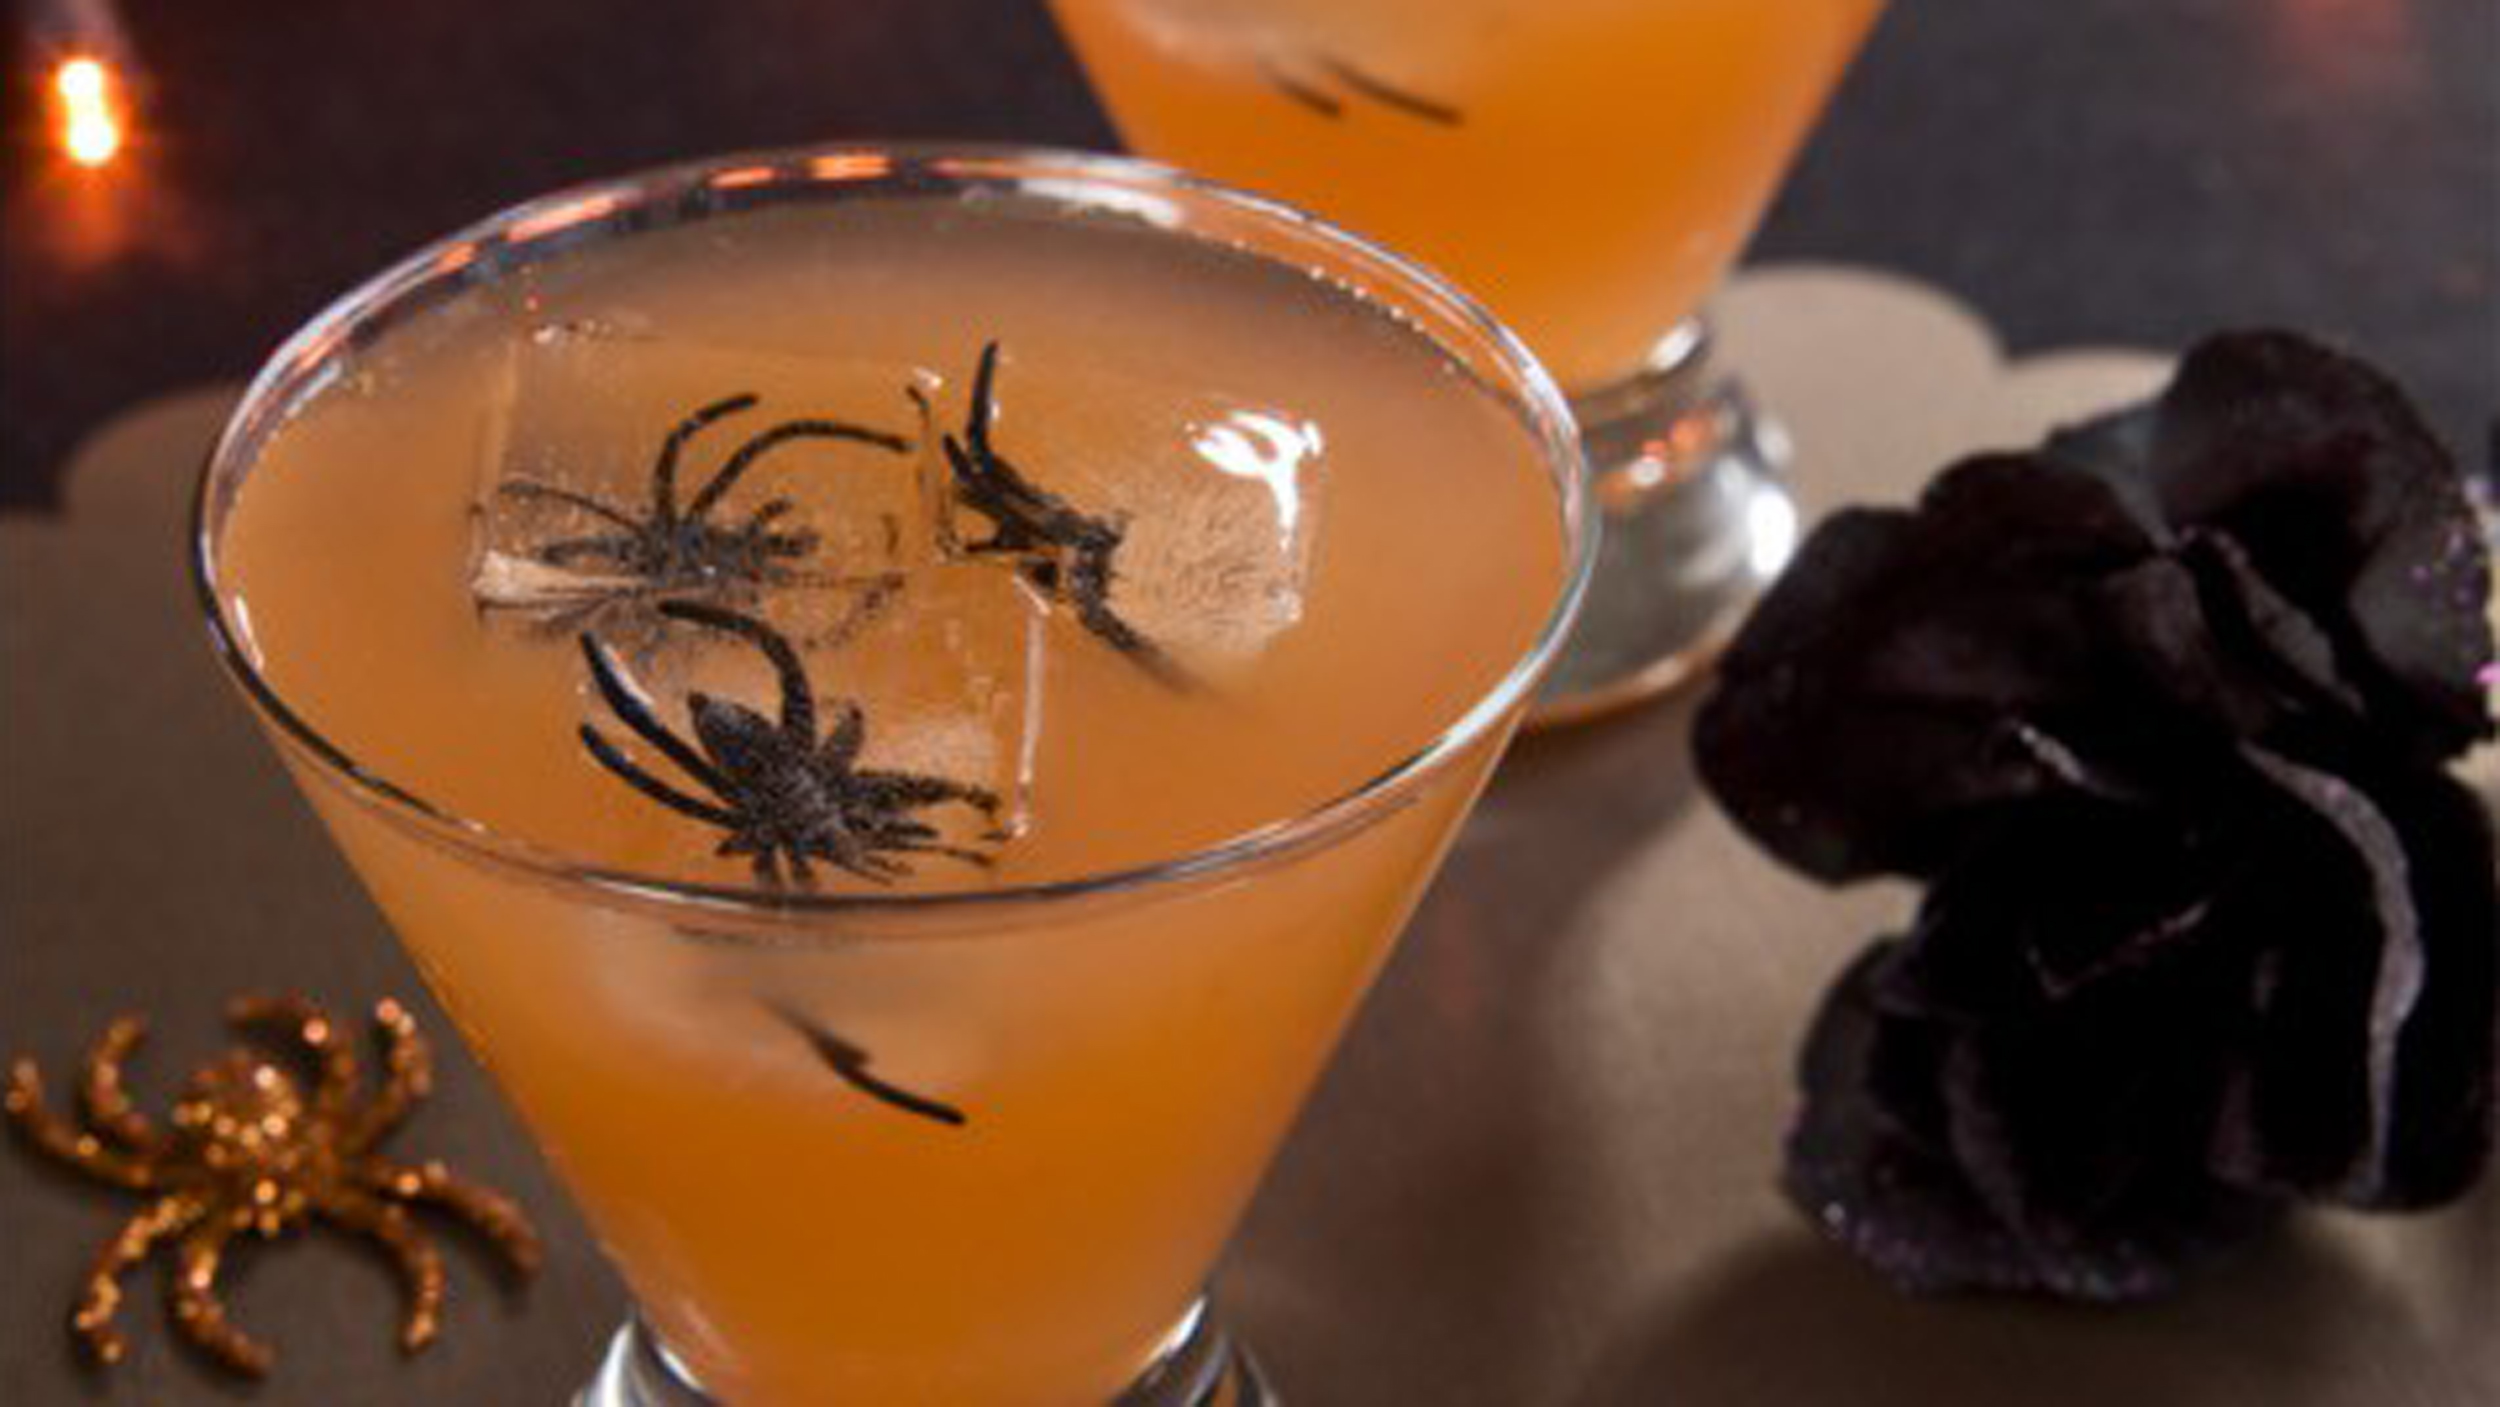 pick your poison 10 spooky halloween drink recipes. Black Bedroom Furniture Sets. Home Design Ideas